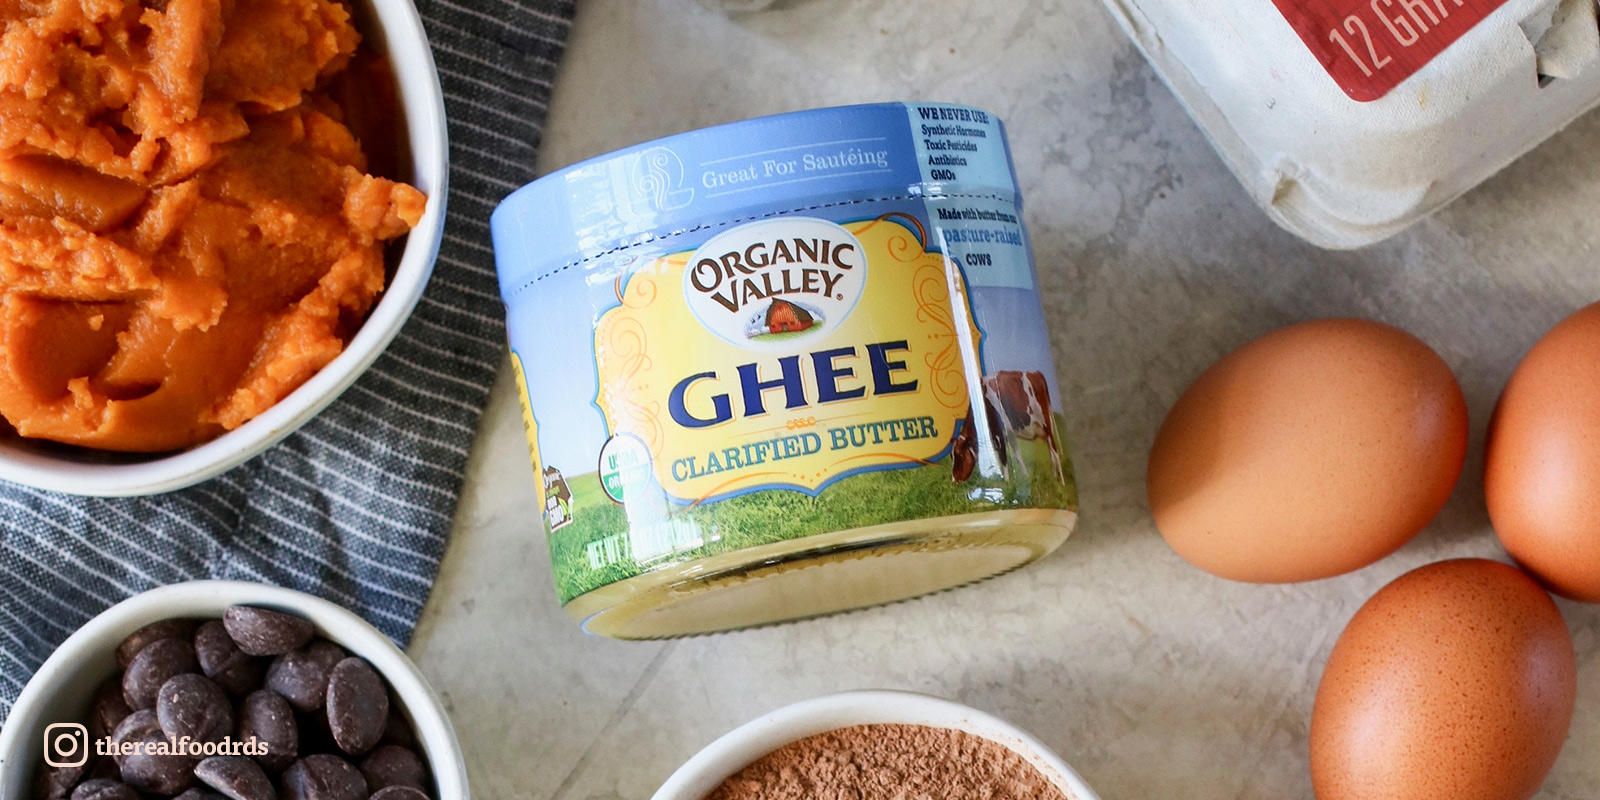 Organic Valley ghee used alongside other ingredients. Photo by The Real Food Dietitians.